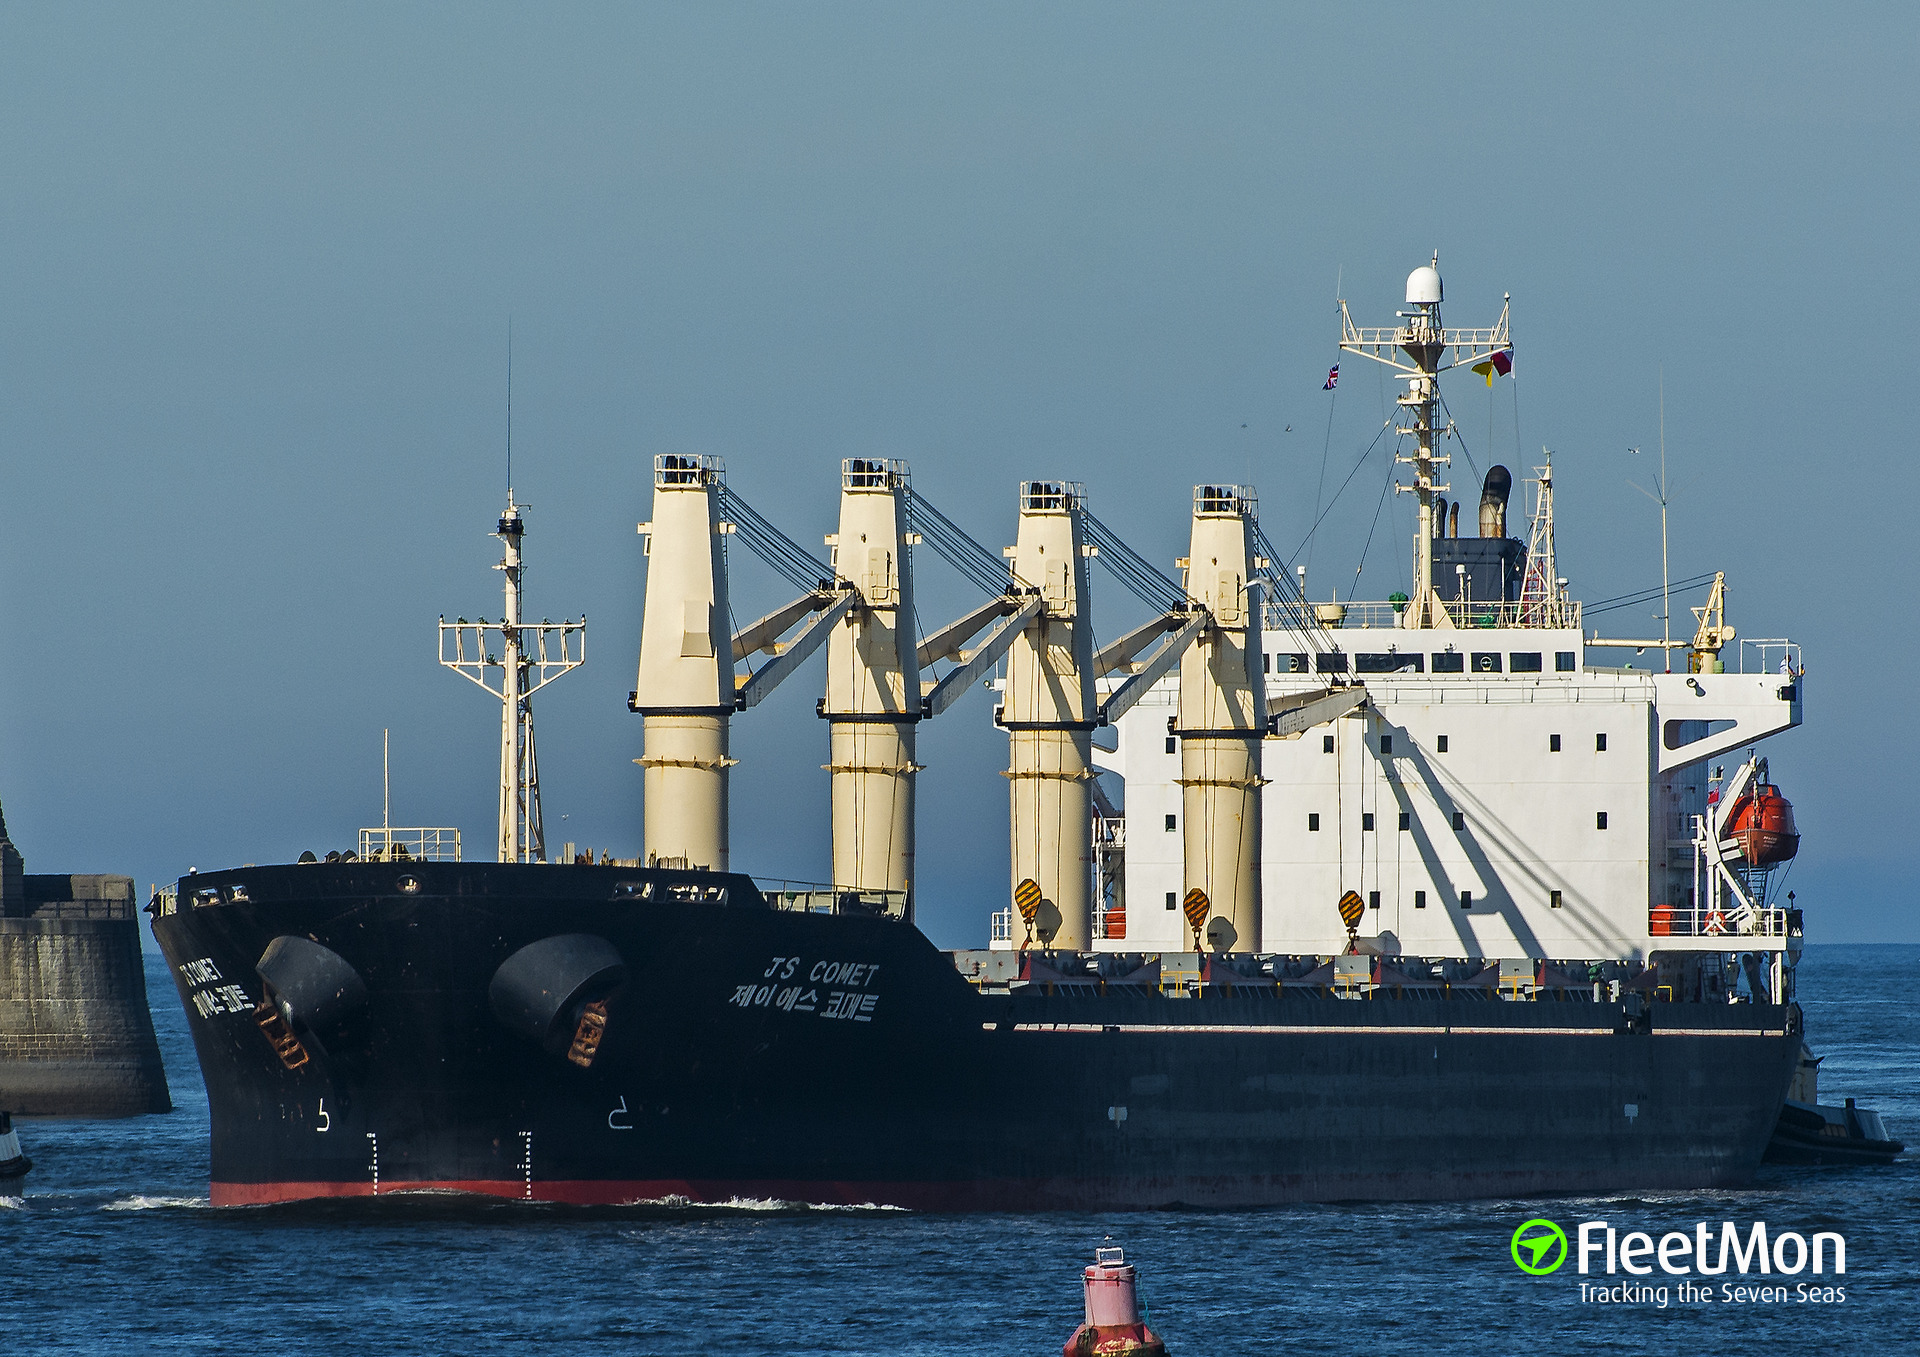 Bulk carrier OS 35 free – not clear, how: UPDATE